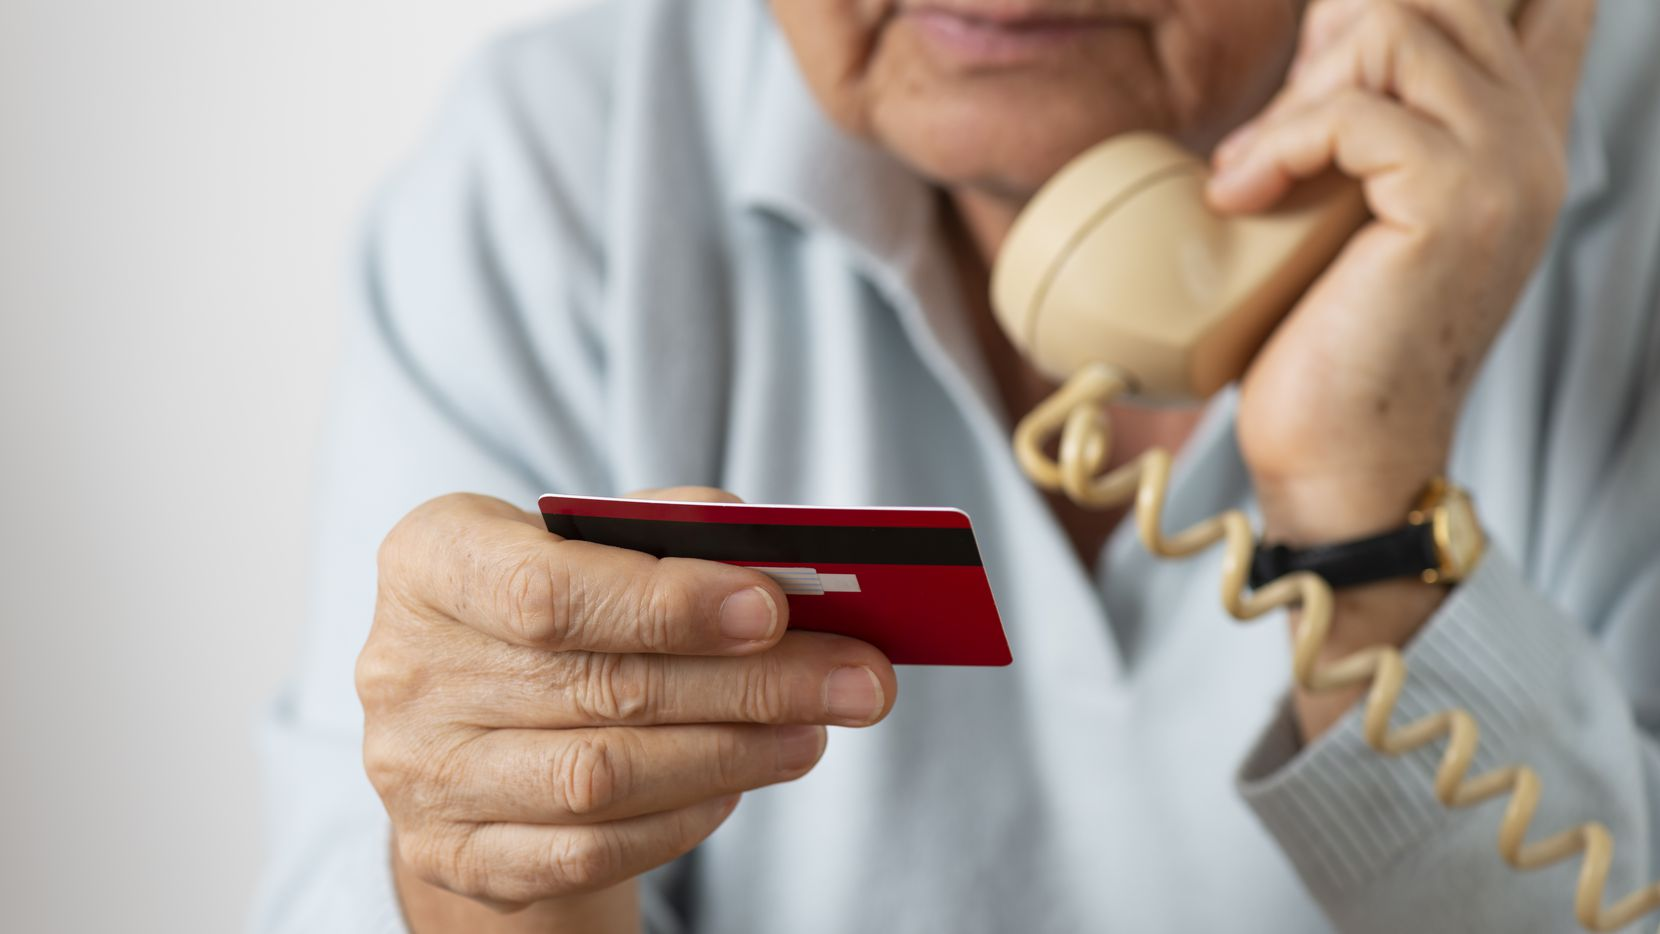 Fraudsters see senior citizens as easy marks. Be on guard for common scams.